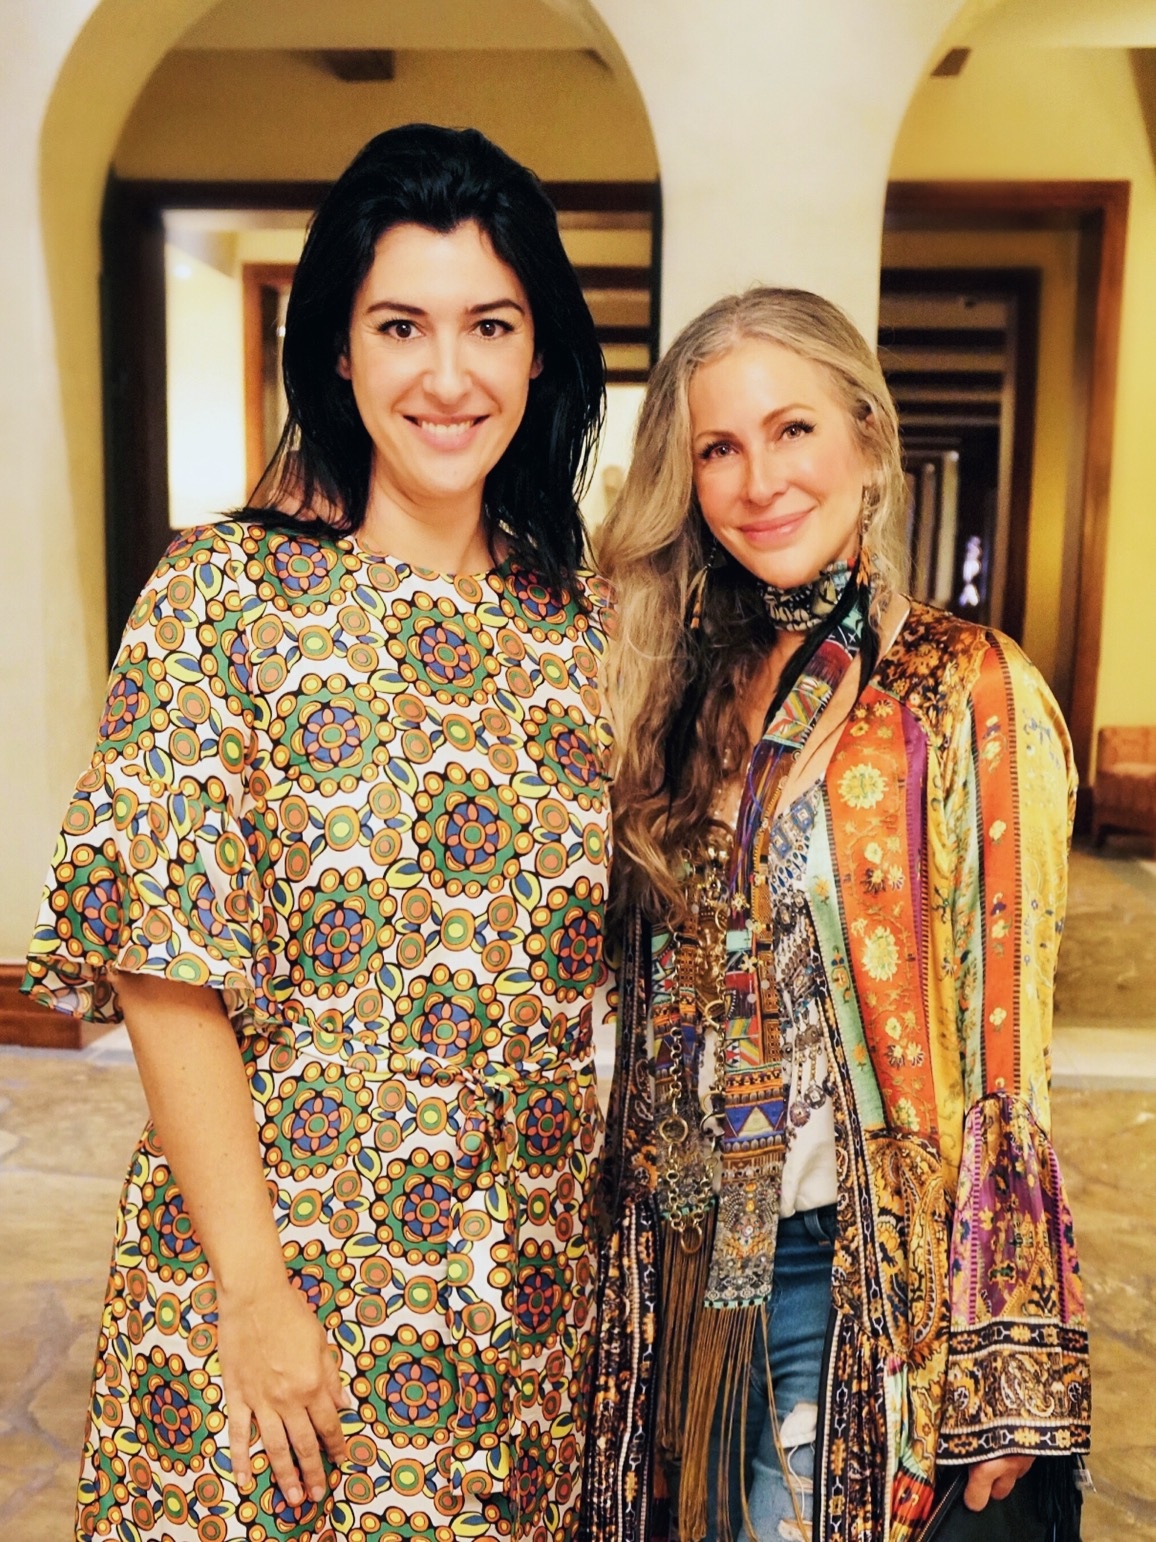 Andrea Somma and Carmen Busquets, co-founders of Omina, which is hosting a fashion and sustainability summit in Costa Rica in June 2018